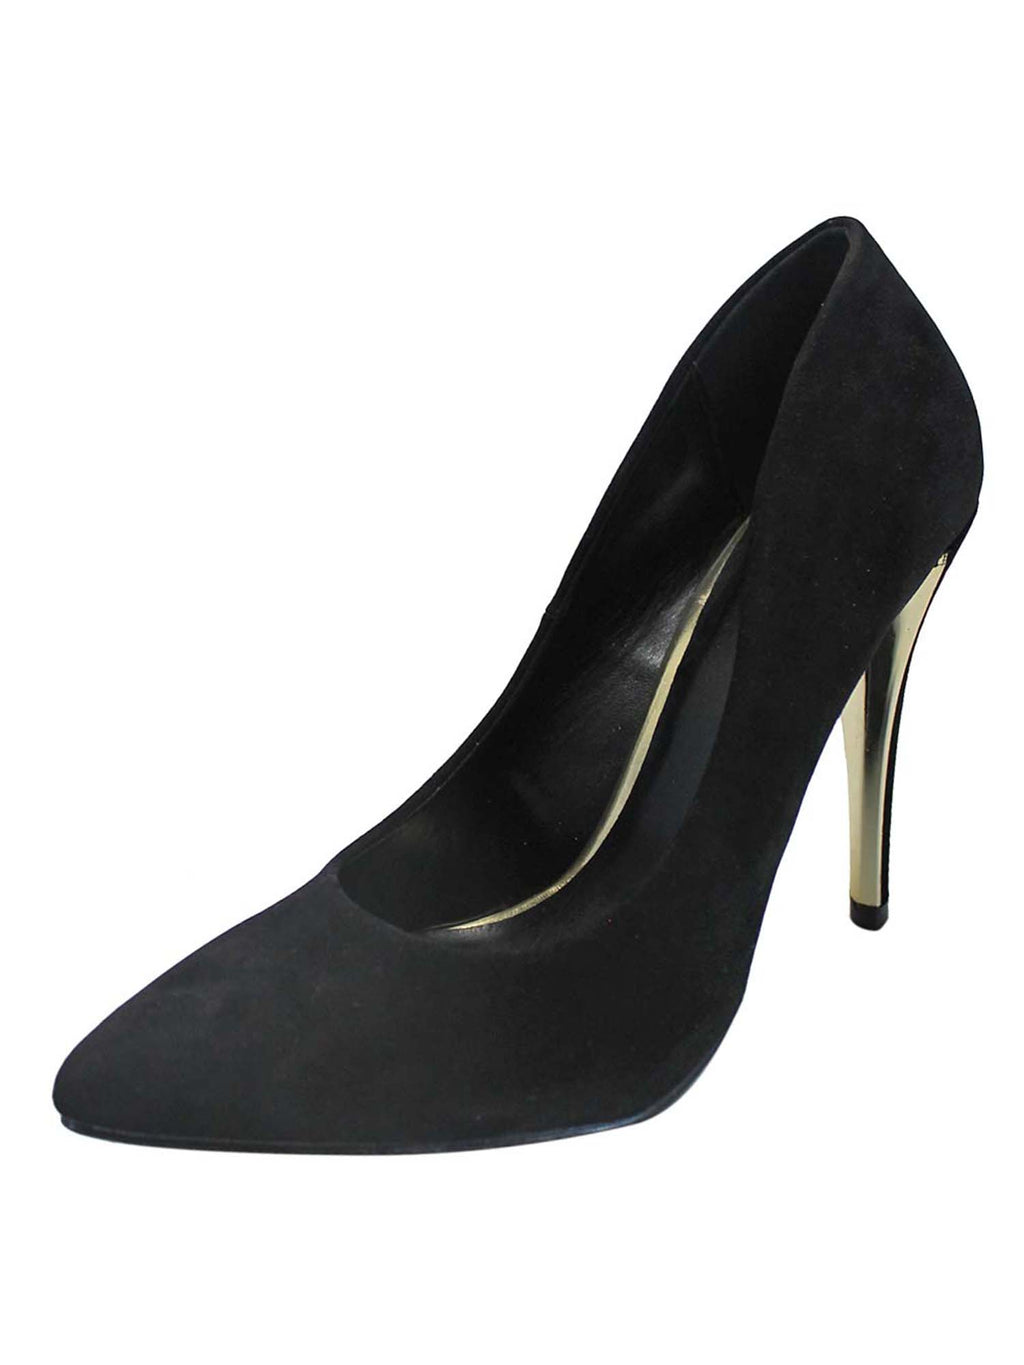 Black Pointed Toe Stiletto Pumps For Women